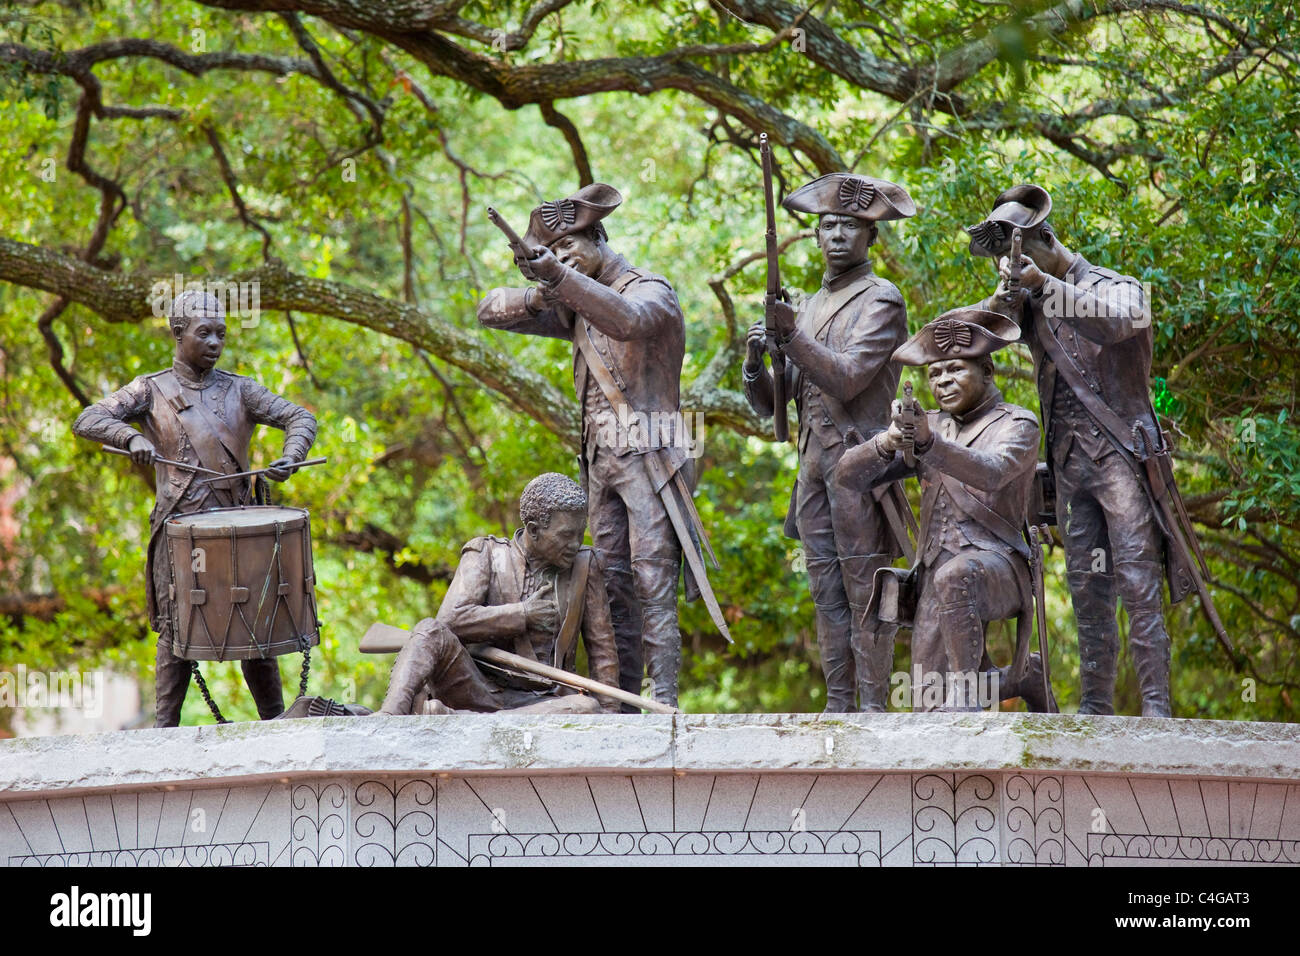 haitian vs american revolution Revolutionary upheaval during the last decades of the eighteenth century was  very different, but focused on the principles brought to light during the.